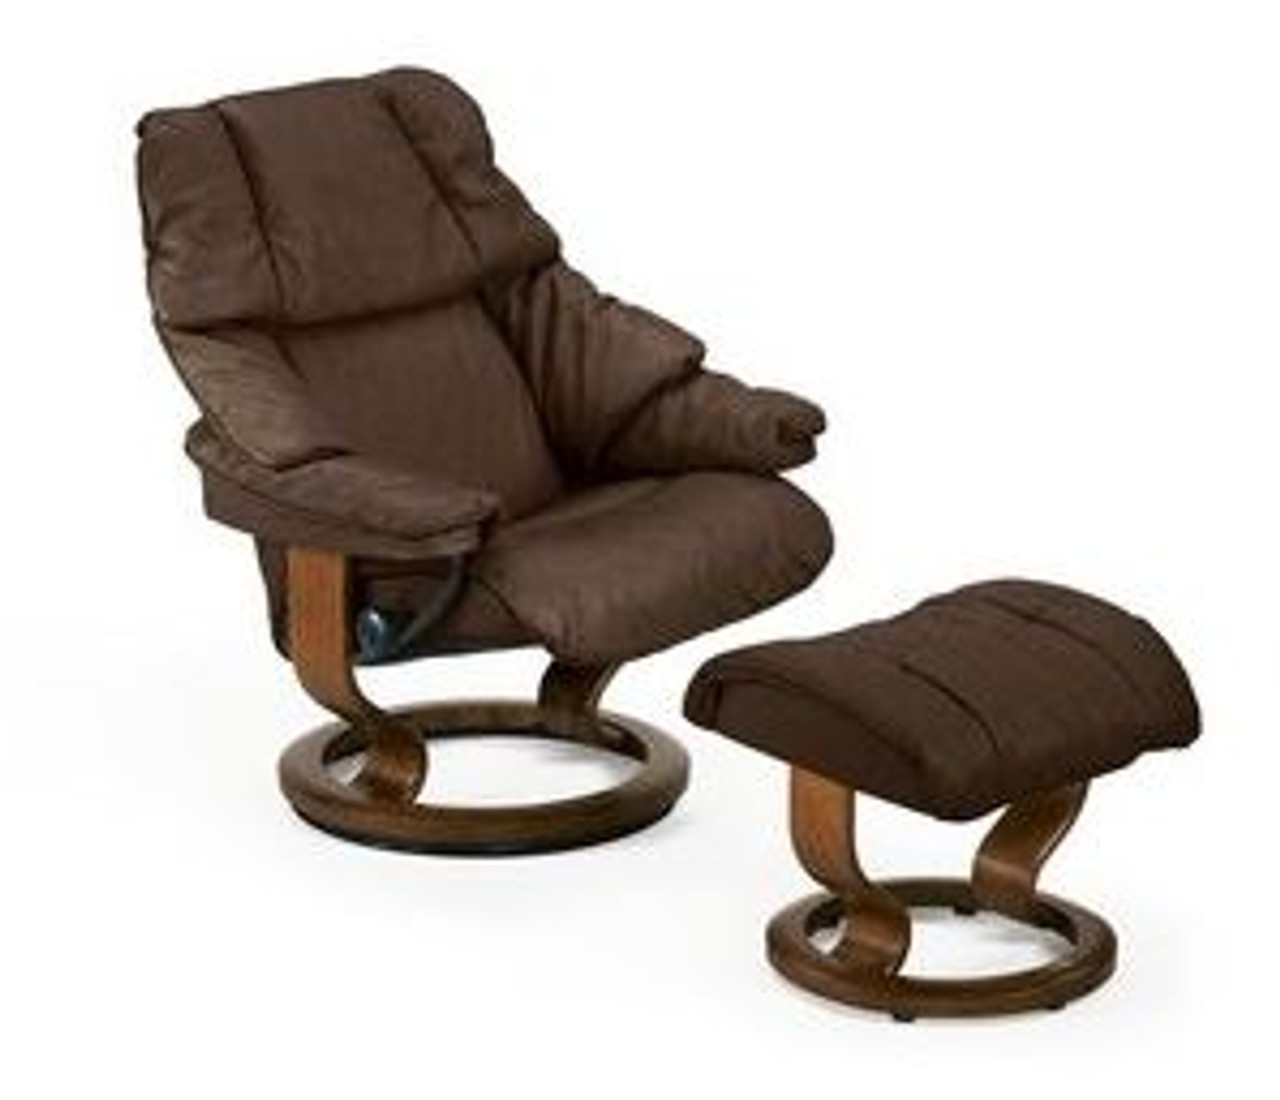 Stressless Furniture Market Harborough Stressless Recliner Sofa Price